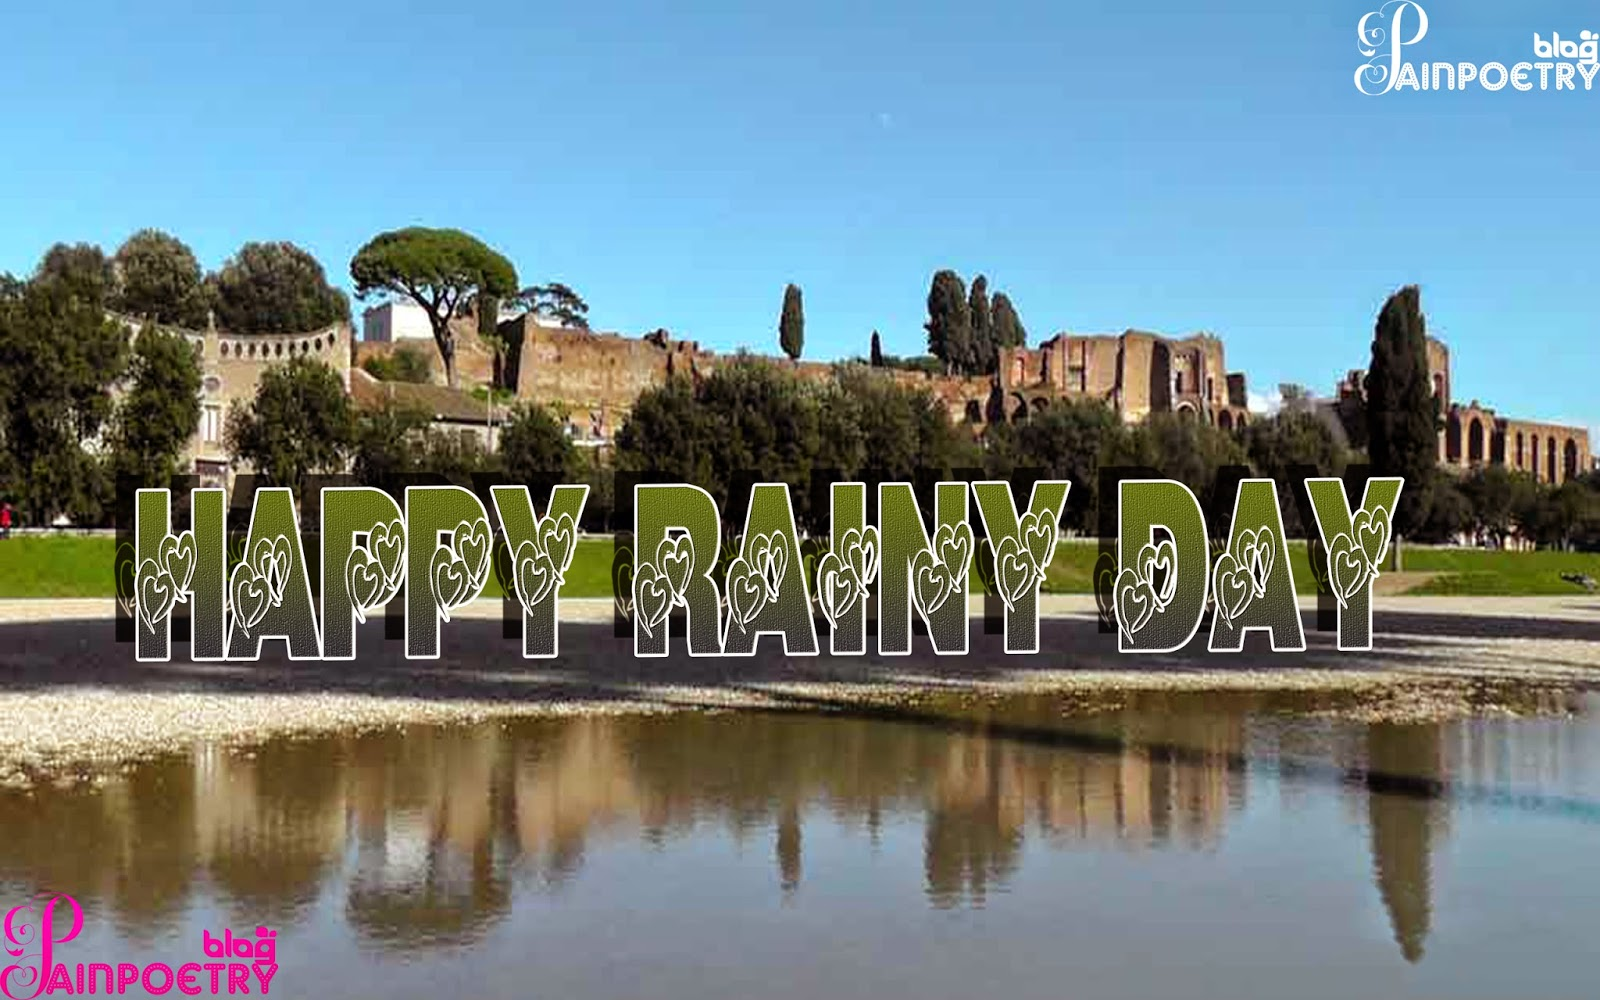 Rainy-Day-Image-Wallpaper-Photo-HD-Wide